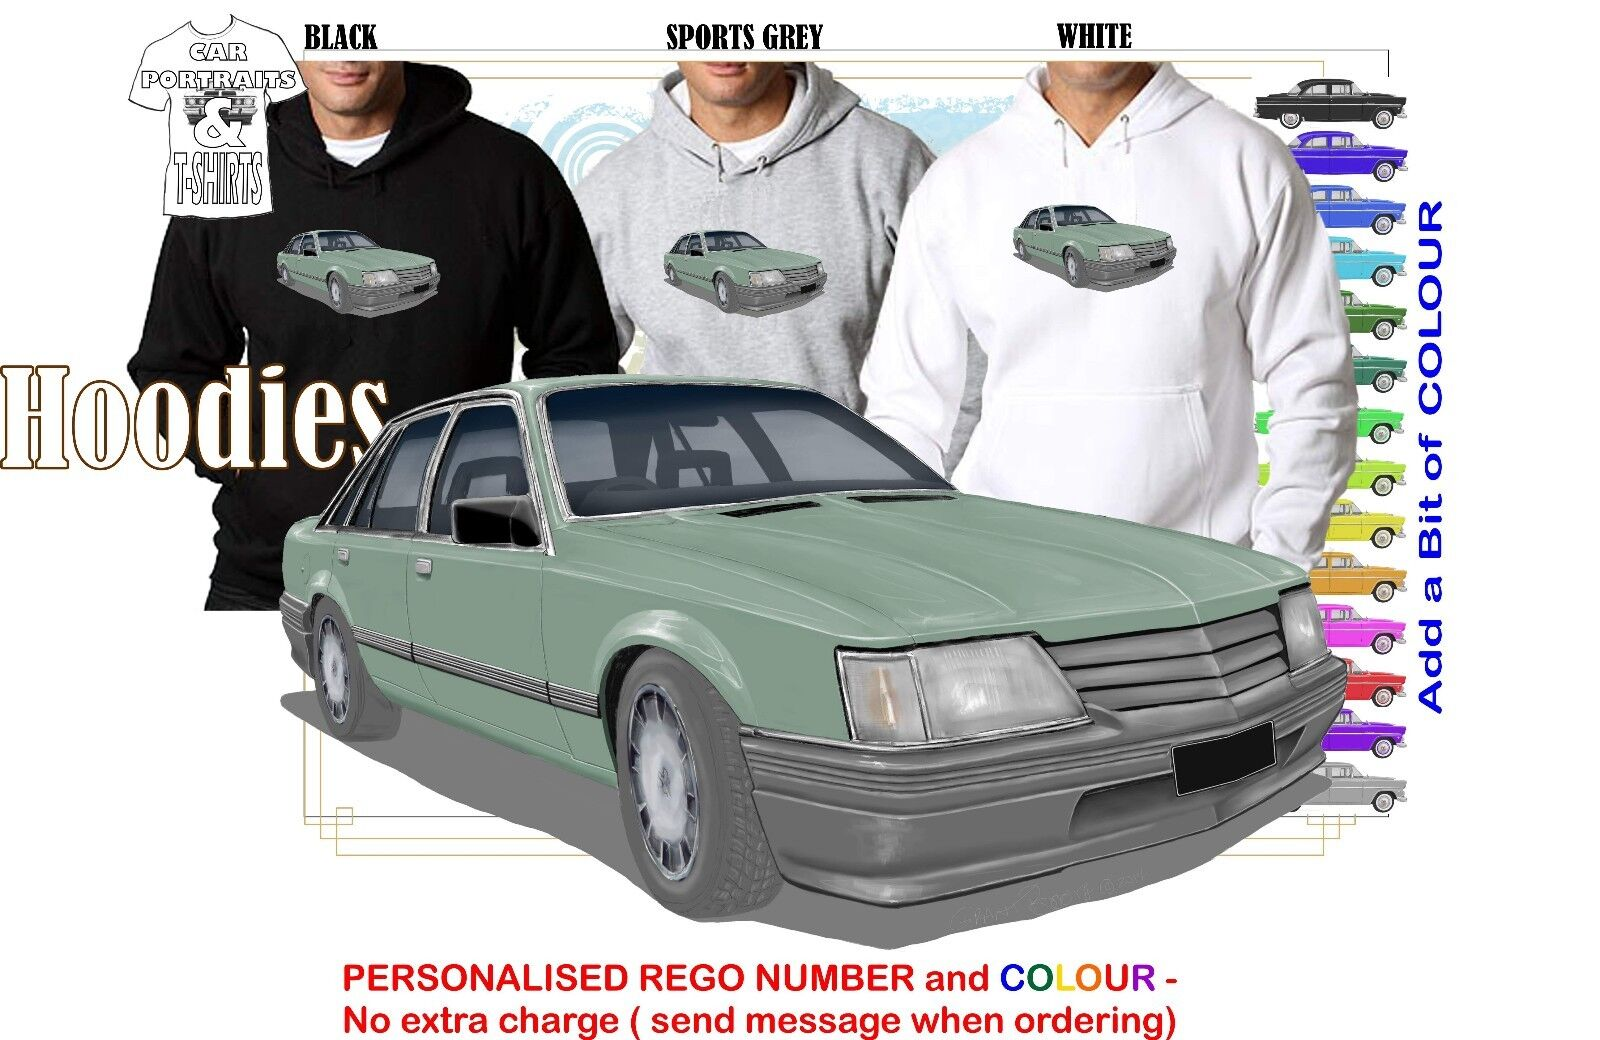 84-86 VK COMMODORE SEDAN HOODIE ILLUSTRATED CLASSIC RETRO MUSCLE SPORTS CAR